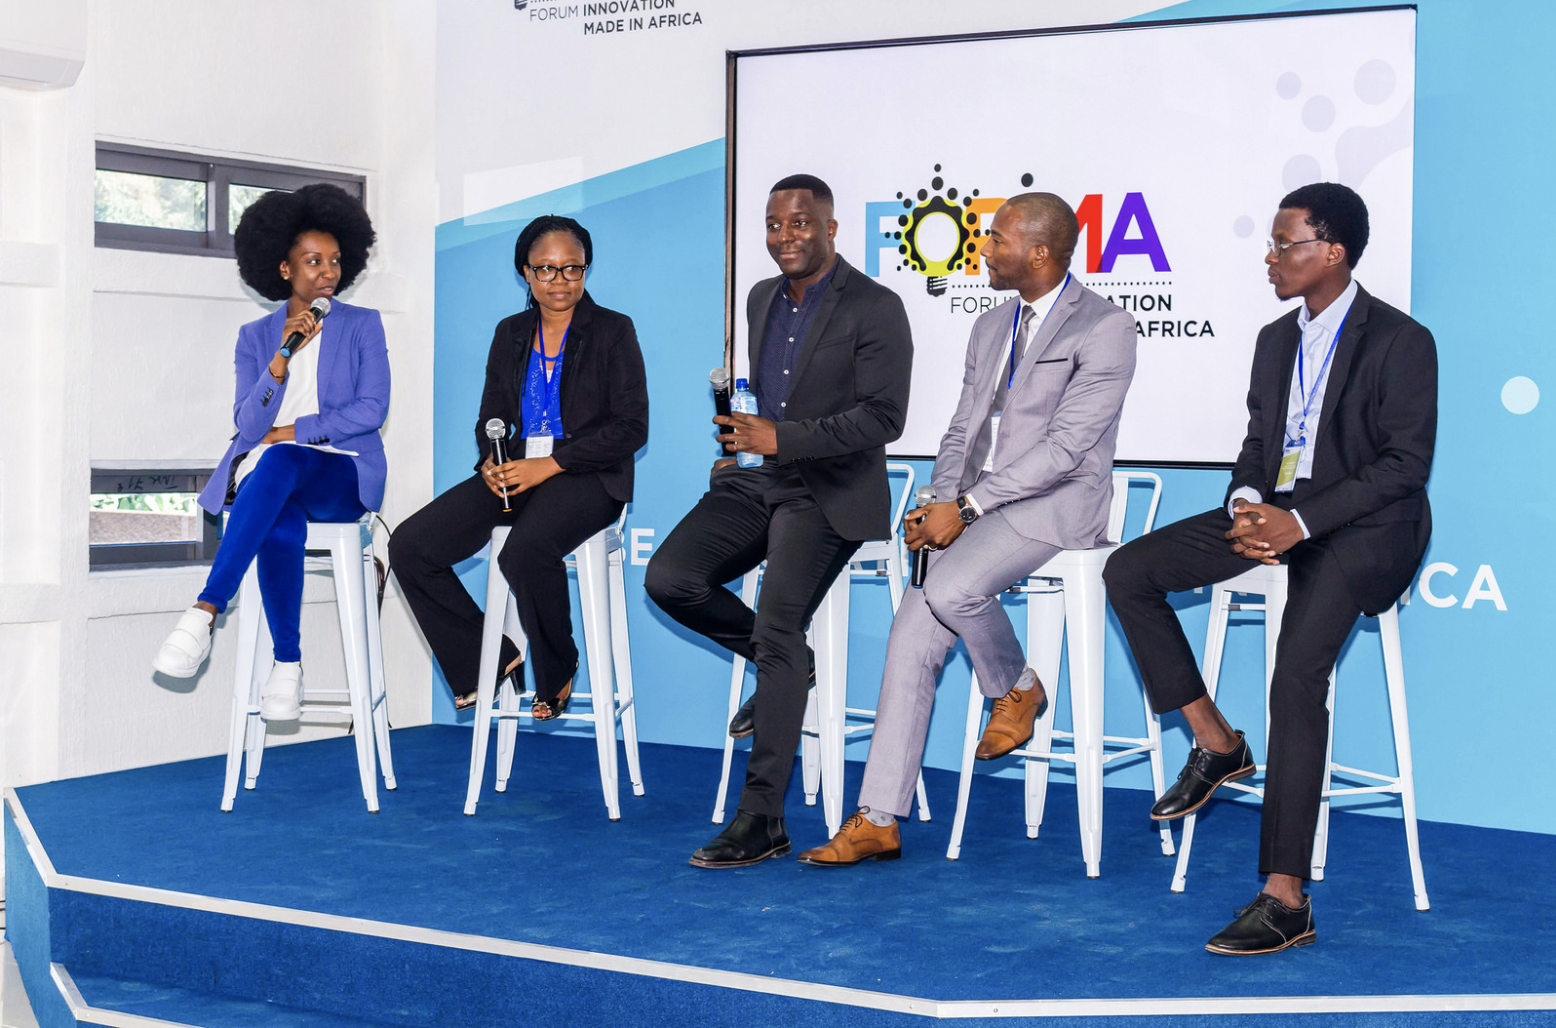 BIG HIGHLIGHTS OF FORIMA: FORUM INNOVATION MADE IN AFRICA